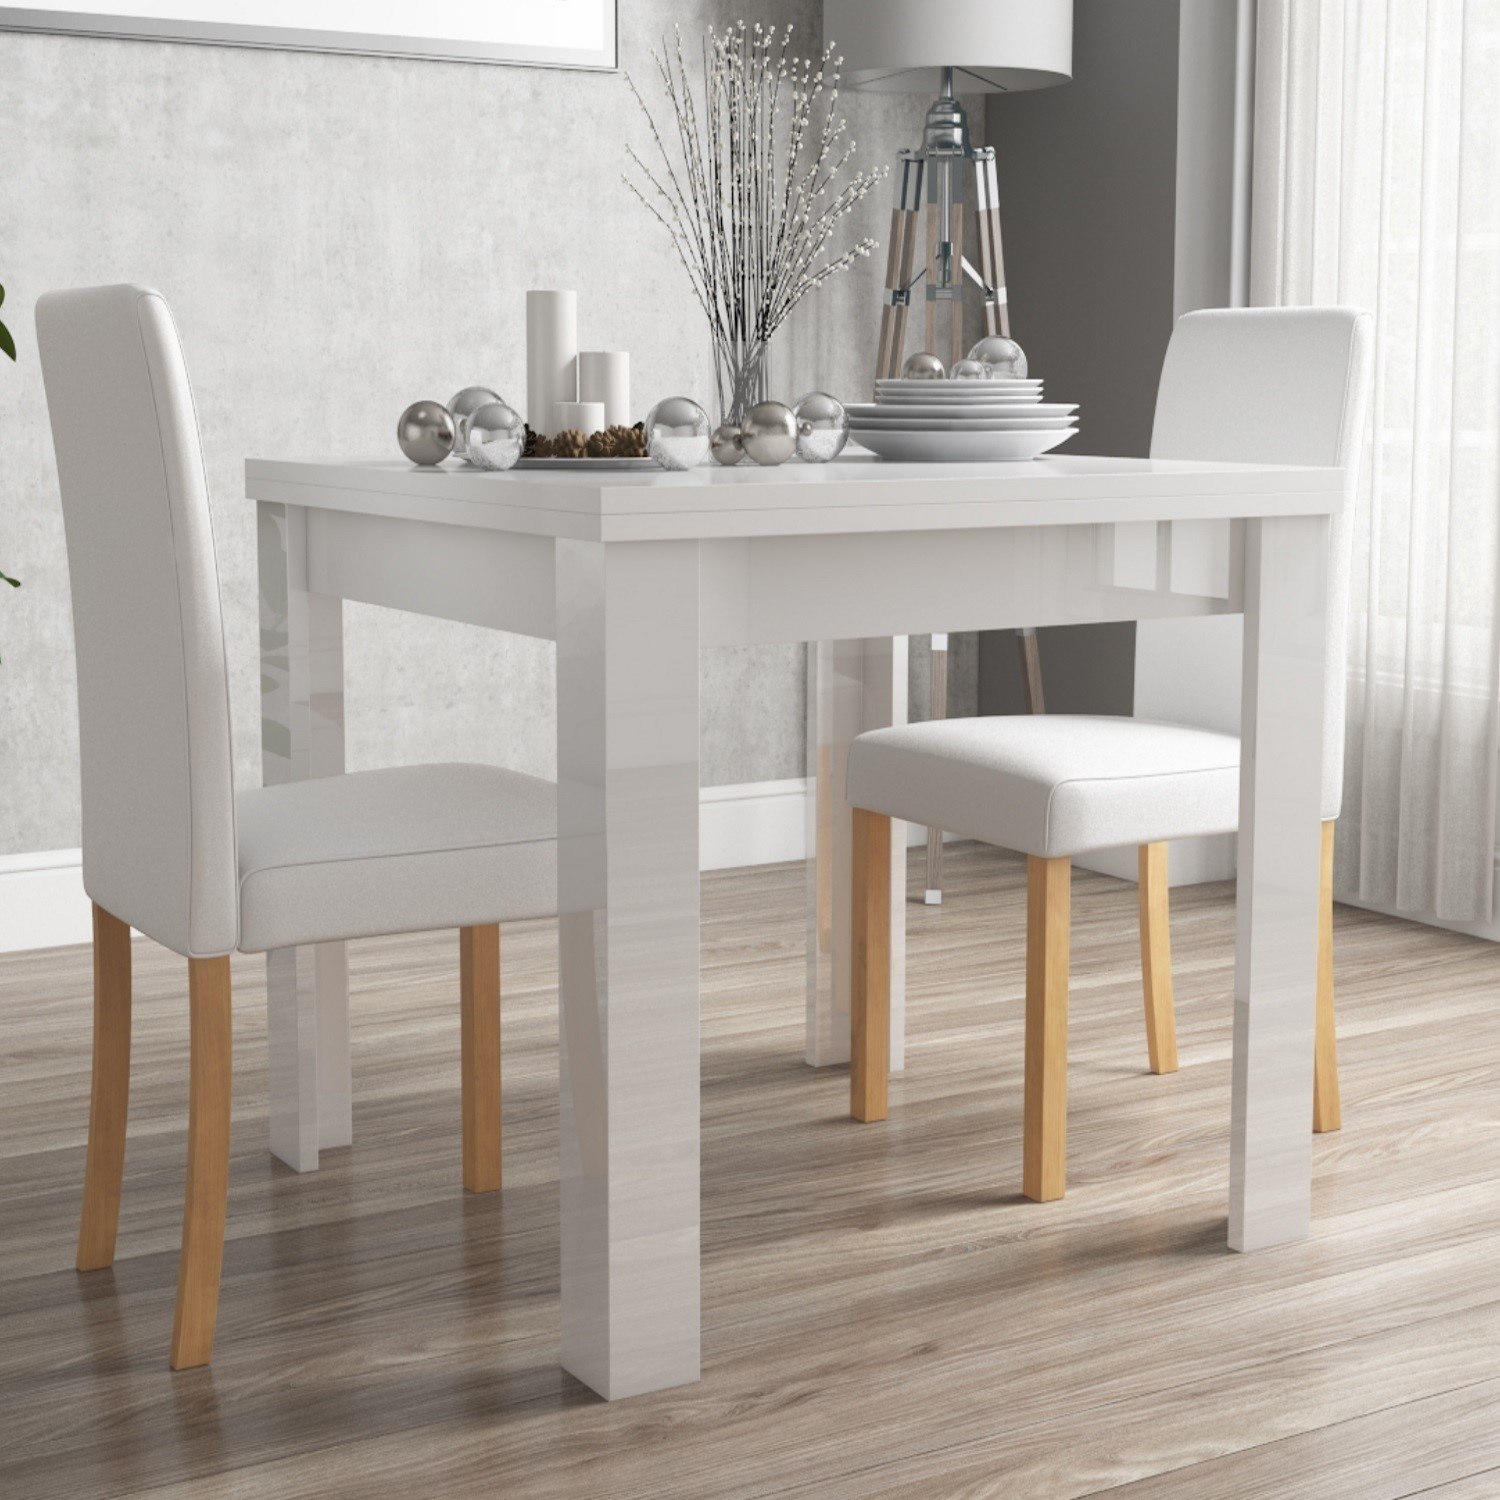 White Gloss Dining Room Furniture Home Design : 3433258BUNVIV001697041Supersize from www.freeproxylists.co size 1500 x 1500 jpeg 314kB